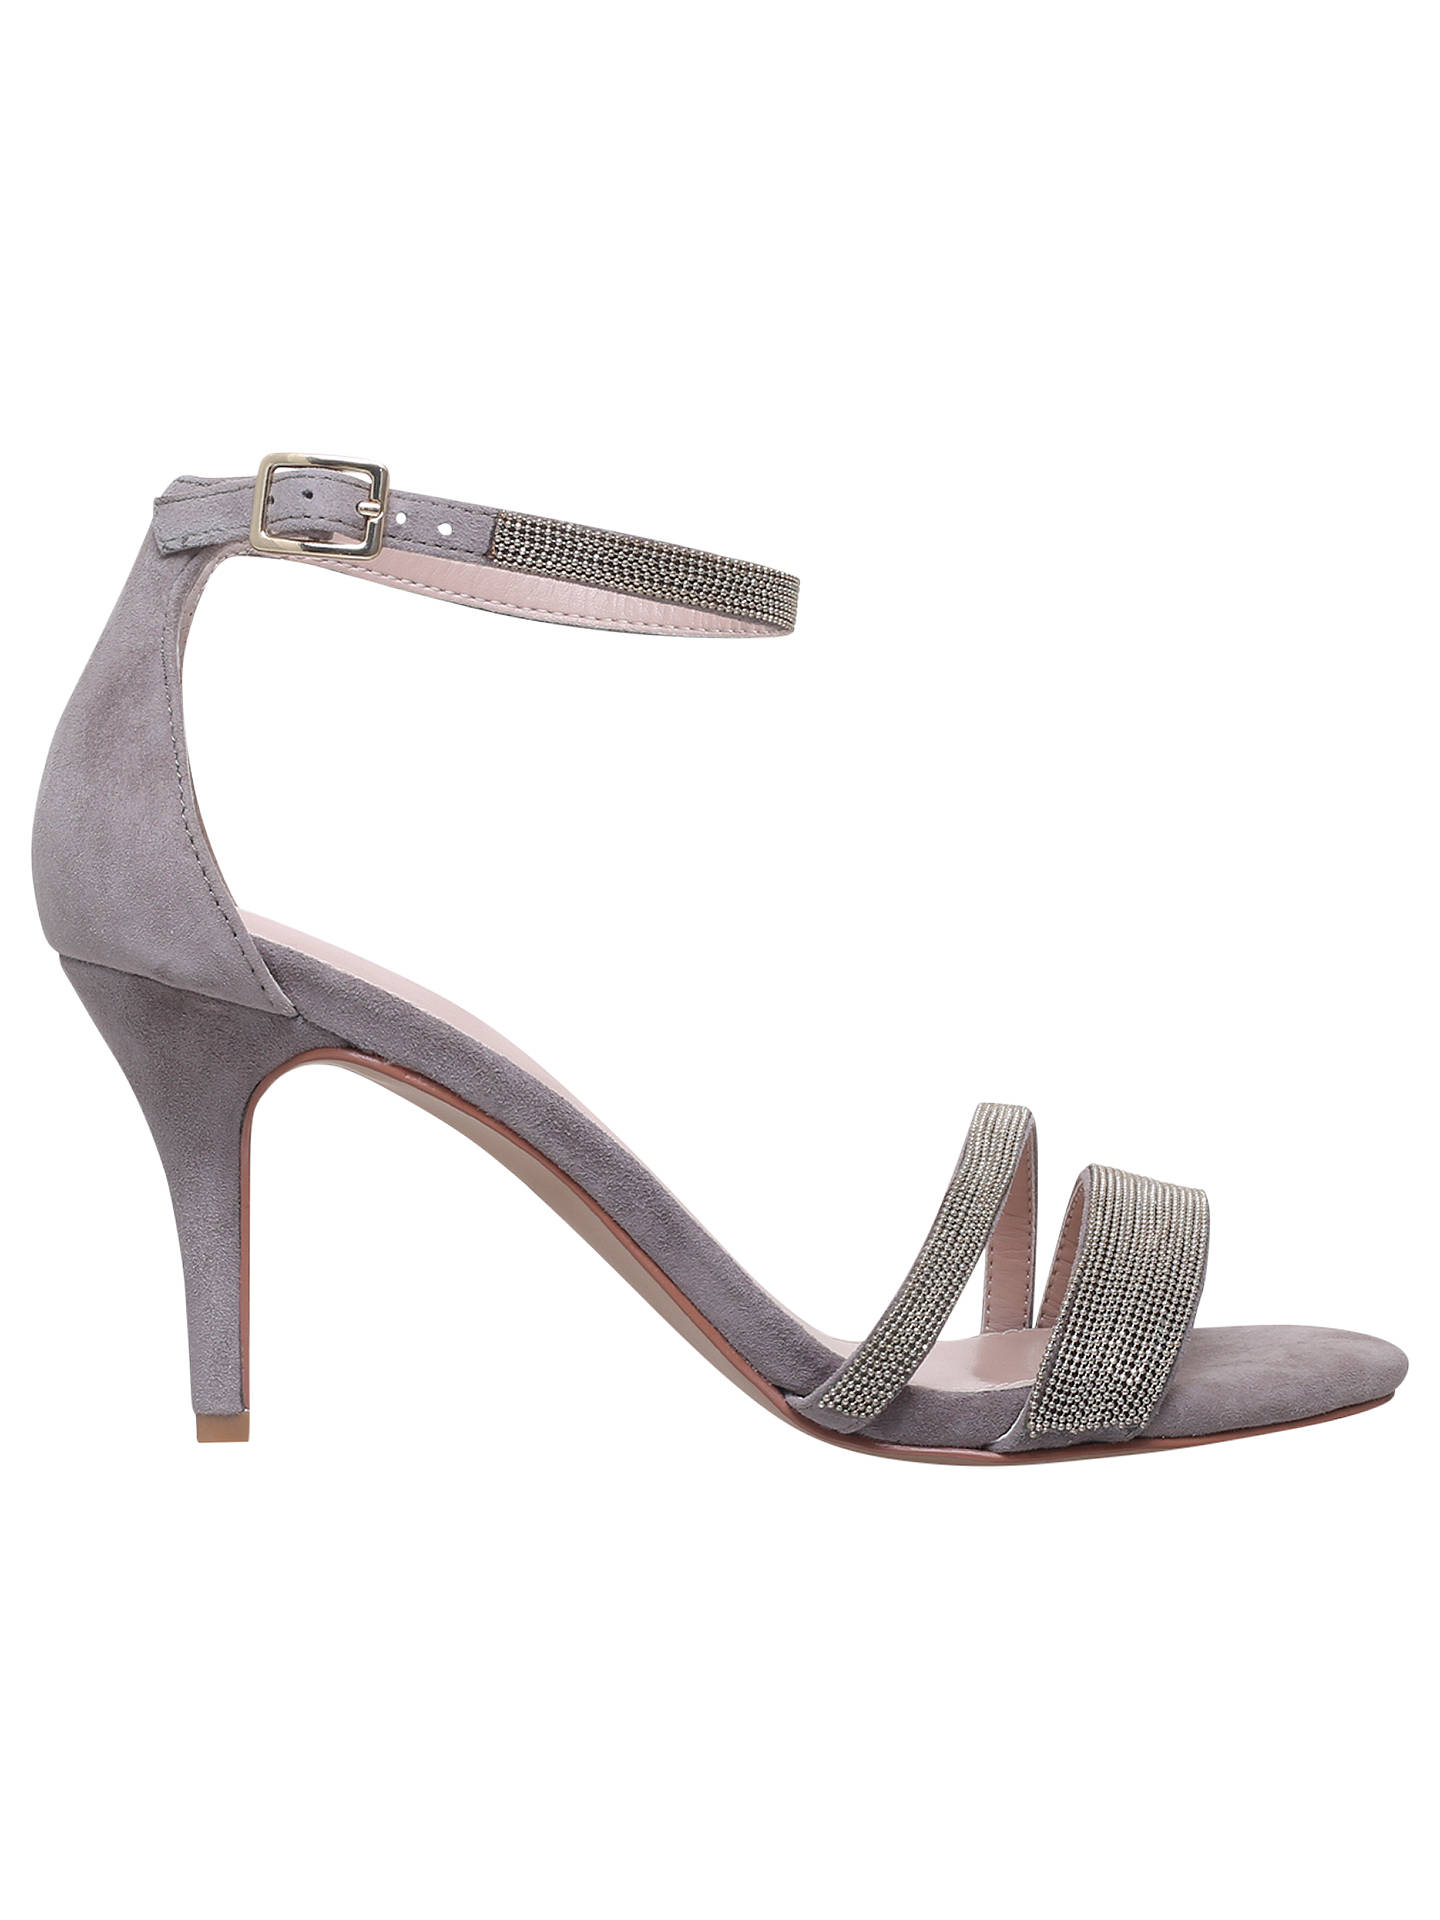 fe0e6c194 Buy Carvela Genesis Stiletto Heel Sandals, Grey Suede, 3 Online at  johnlewis.com ...